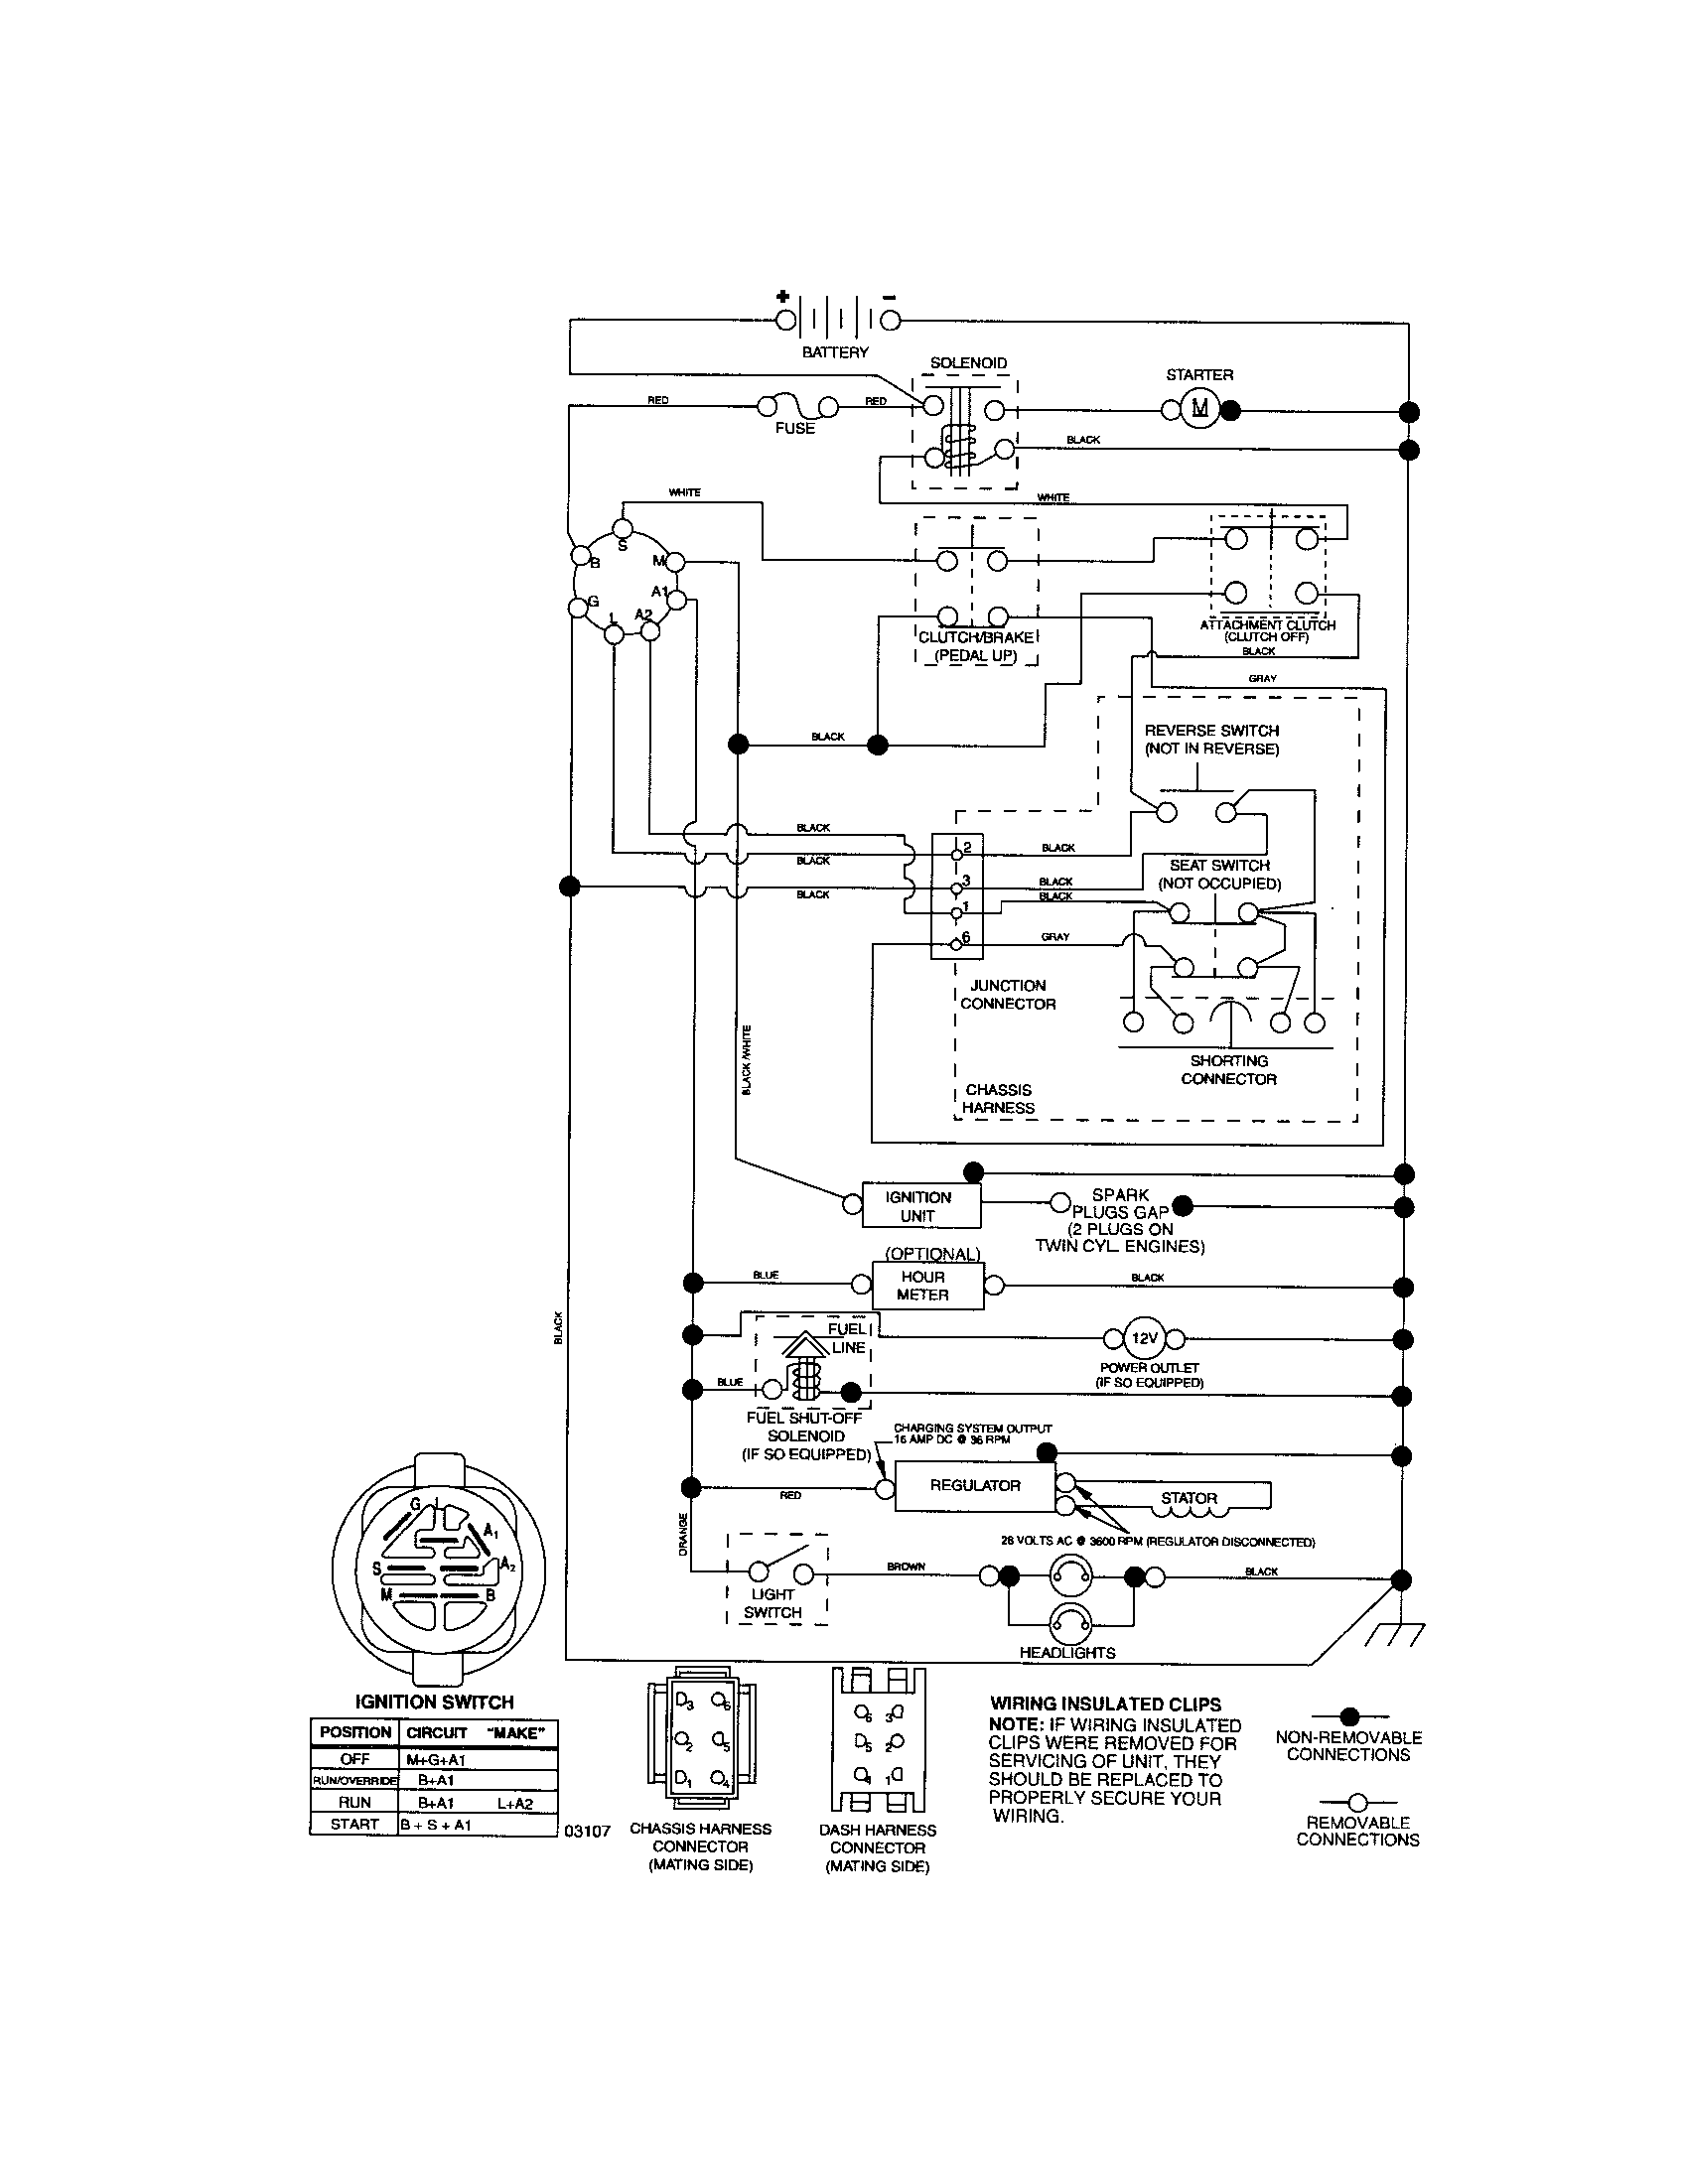 6af5f1447fd13c8443376822ddc1e105 craftsman riding mower electrical diagram wiring diagram tractor ignition switch wiring diagram at readyjetset.co